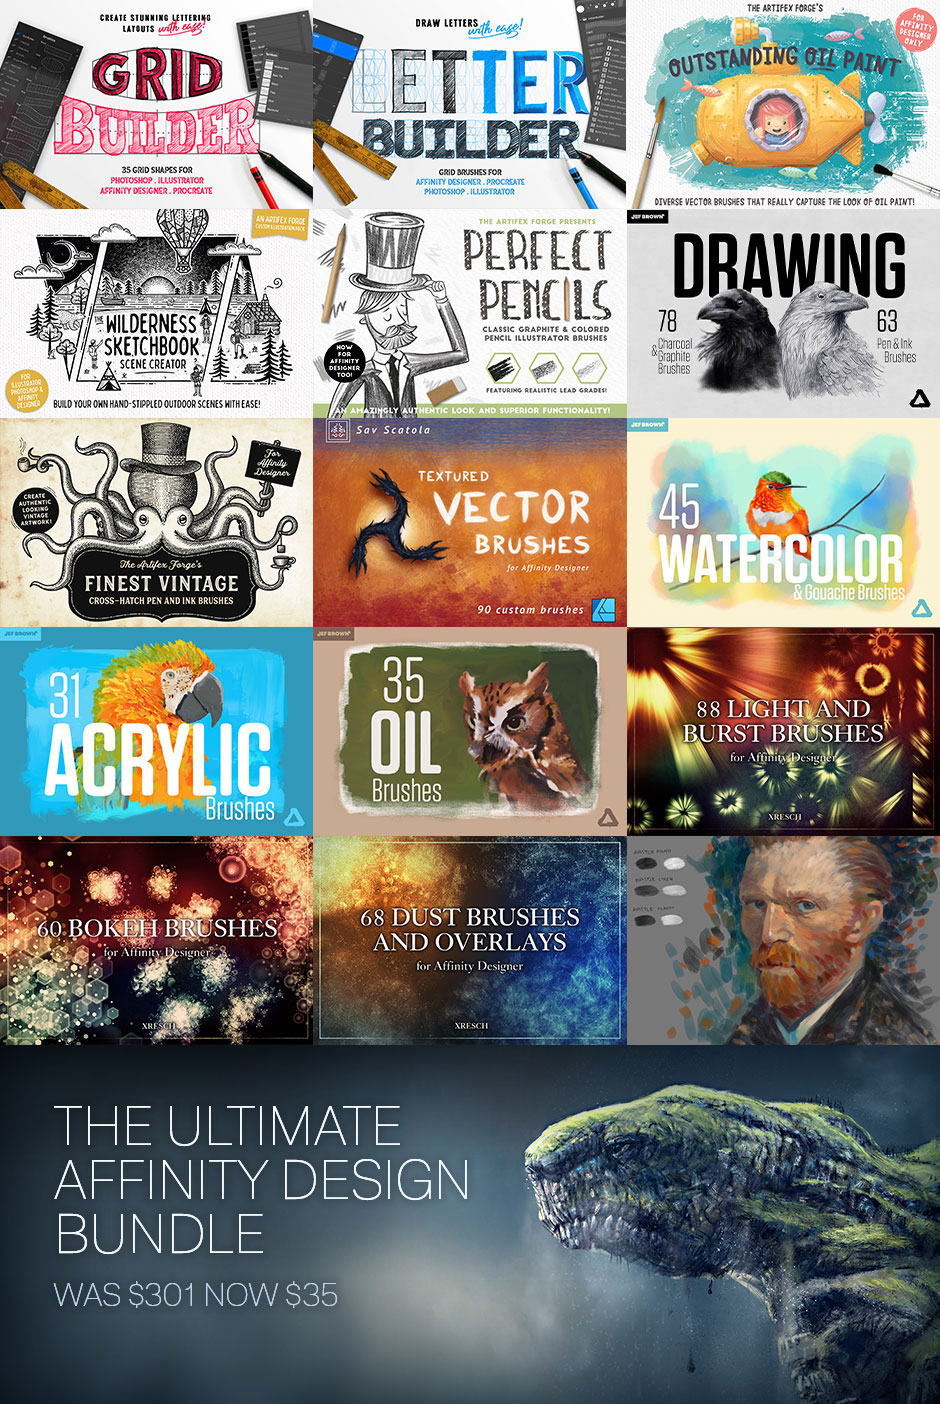 The Ultimate Affinity Design Bundle